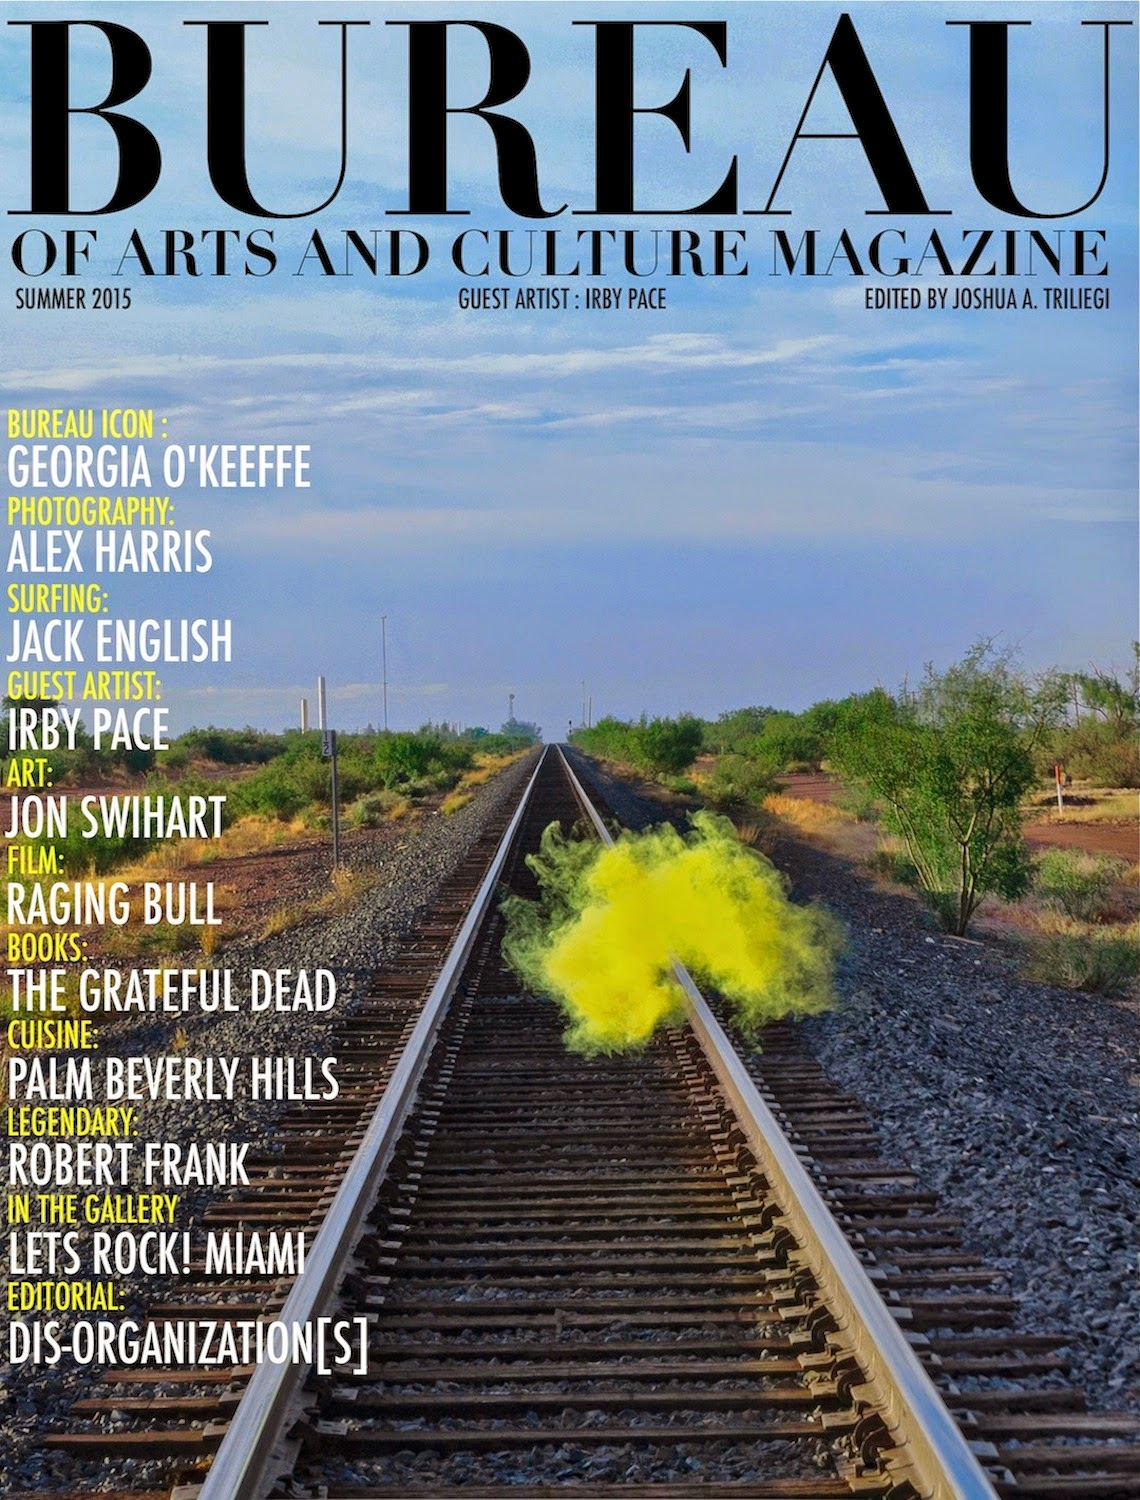 SUMMER 2015 EDITION TAP COVER FOR A FREE 200+ PAGE MAGAZINE